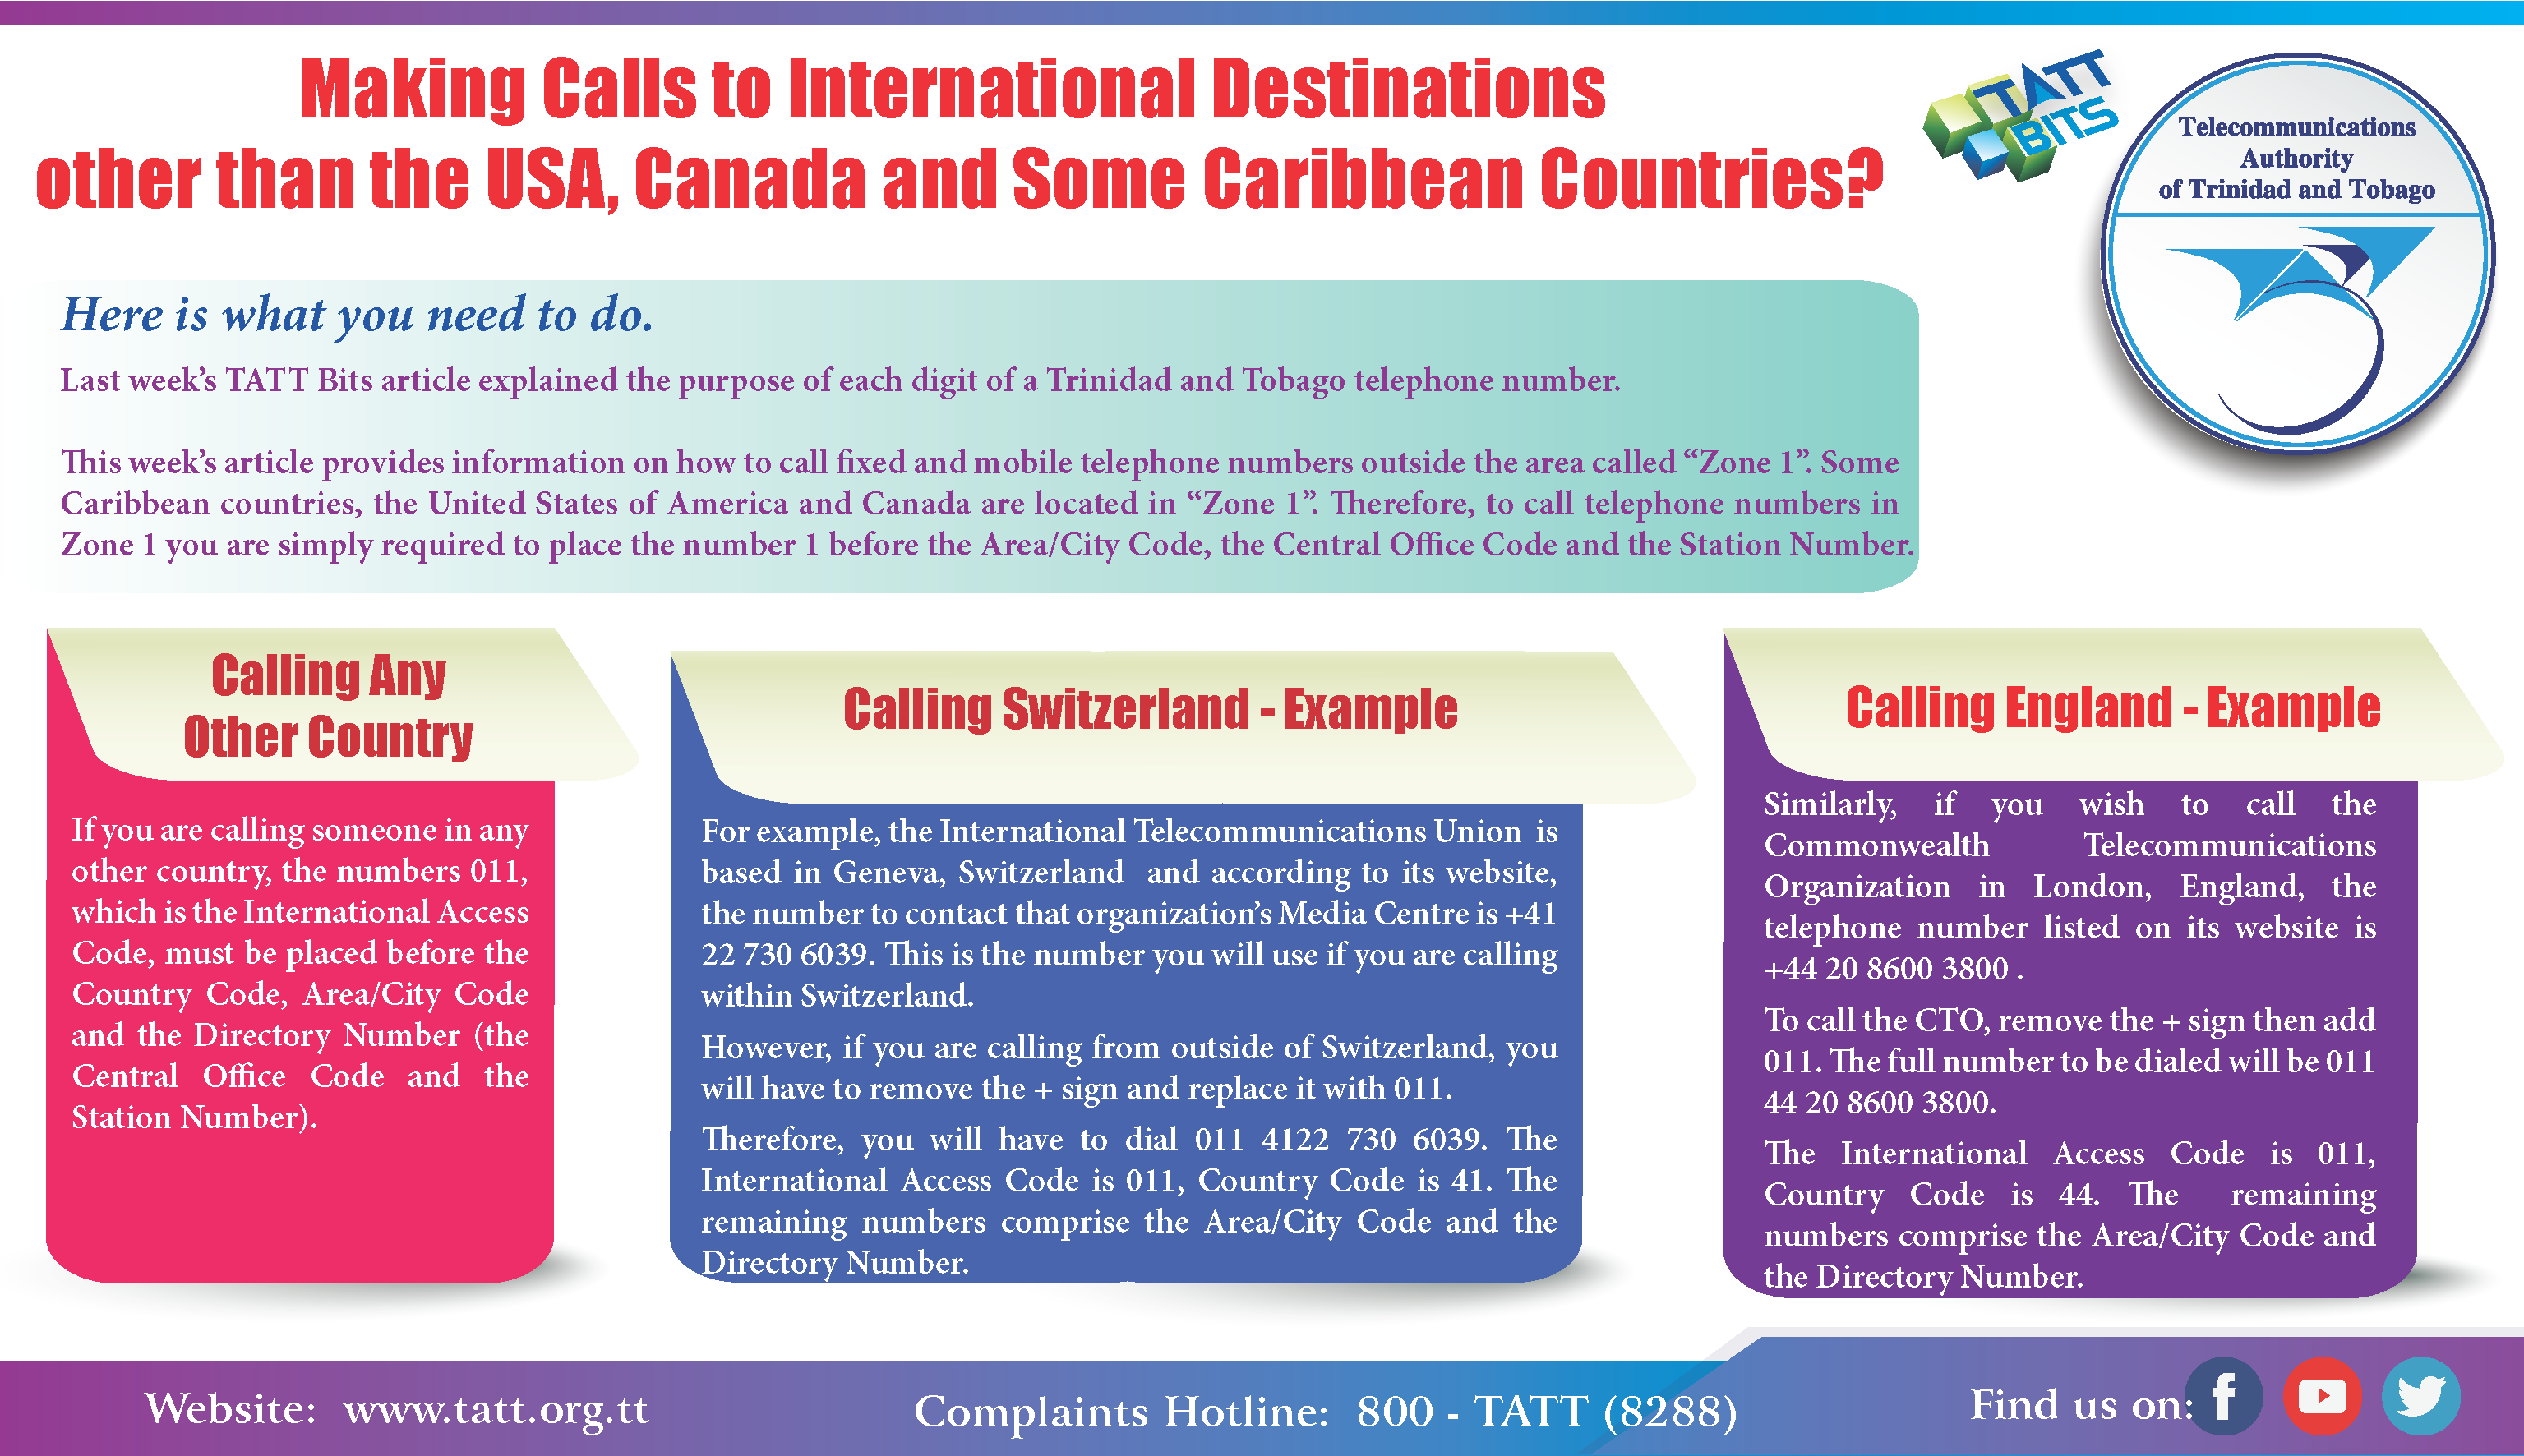 https://tatt.org.tt/Portals/0/TATT%20Bits/Making%20Calls%20to%20International%20Destinations.png